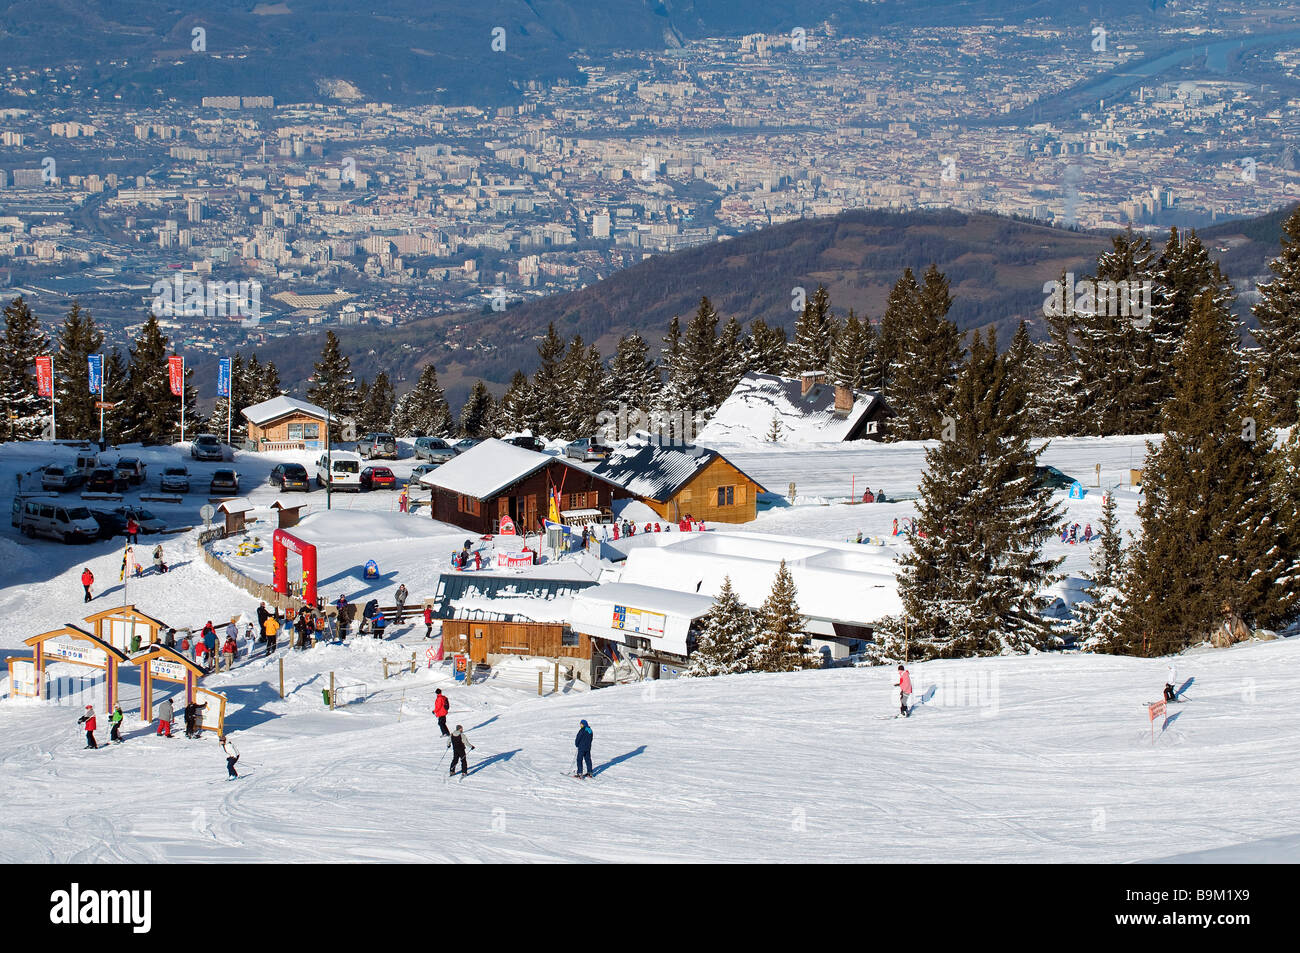 france, isere, belledonne massif, chamrousse, ski resort dominating